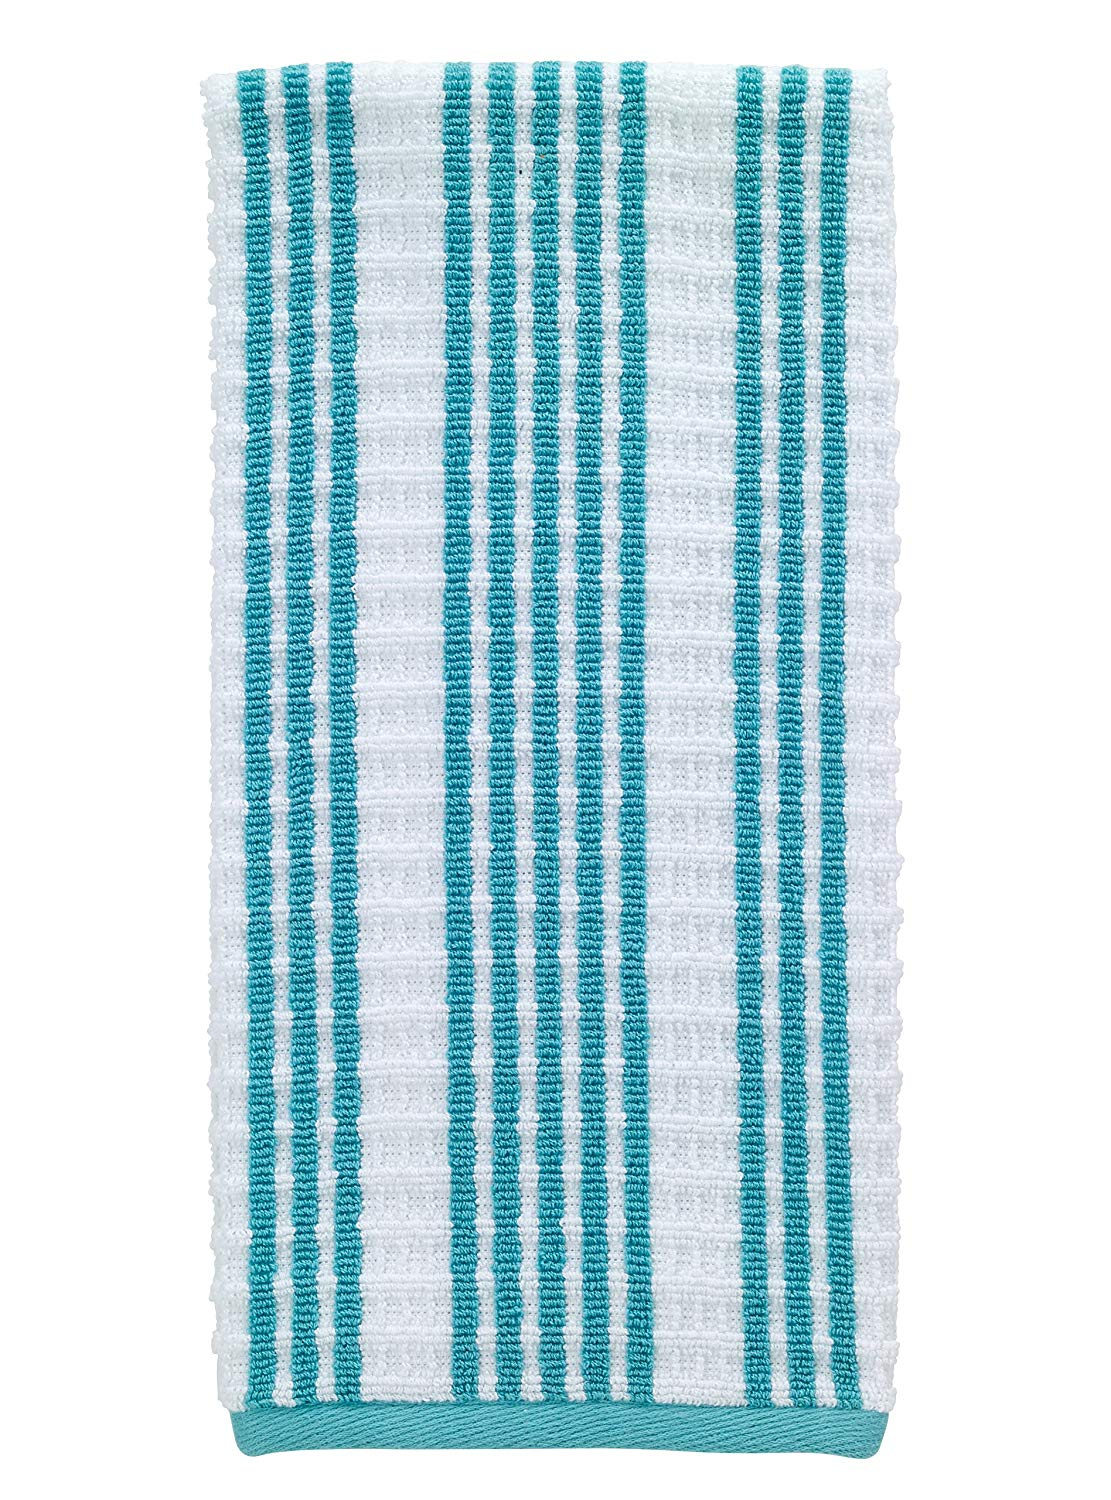 "T-fal Textiles Striped Waffle 100% Terry Cotton, Highly Absorbent, Anti-Microbial, Oversized Kitchen Towel, 16"" x 28"", Breeze"